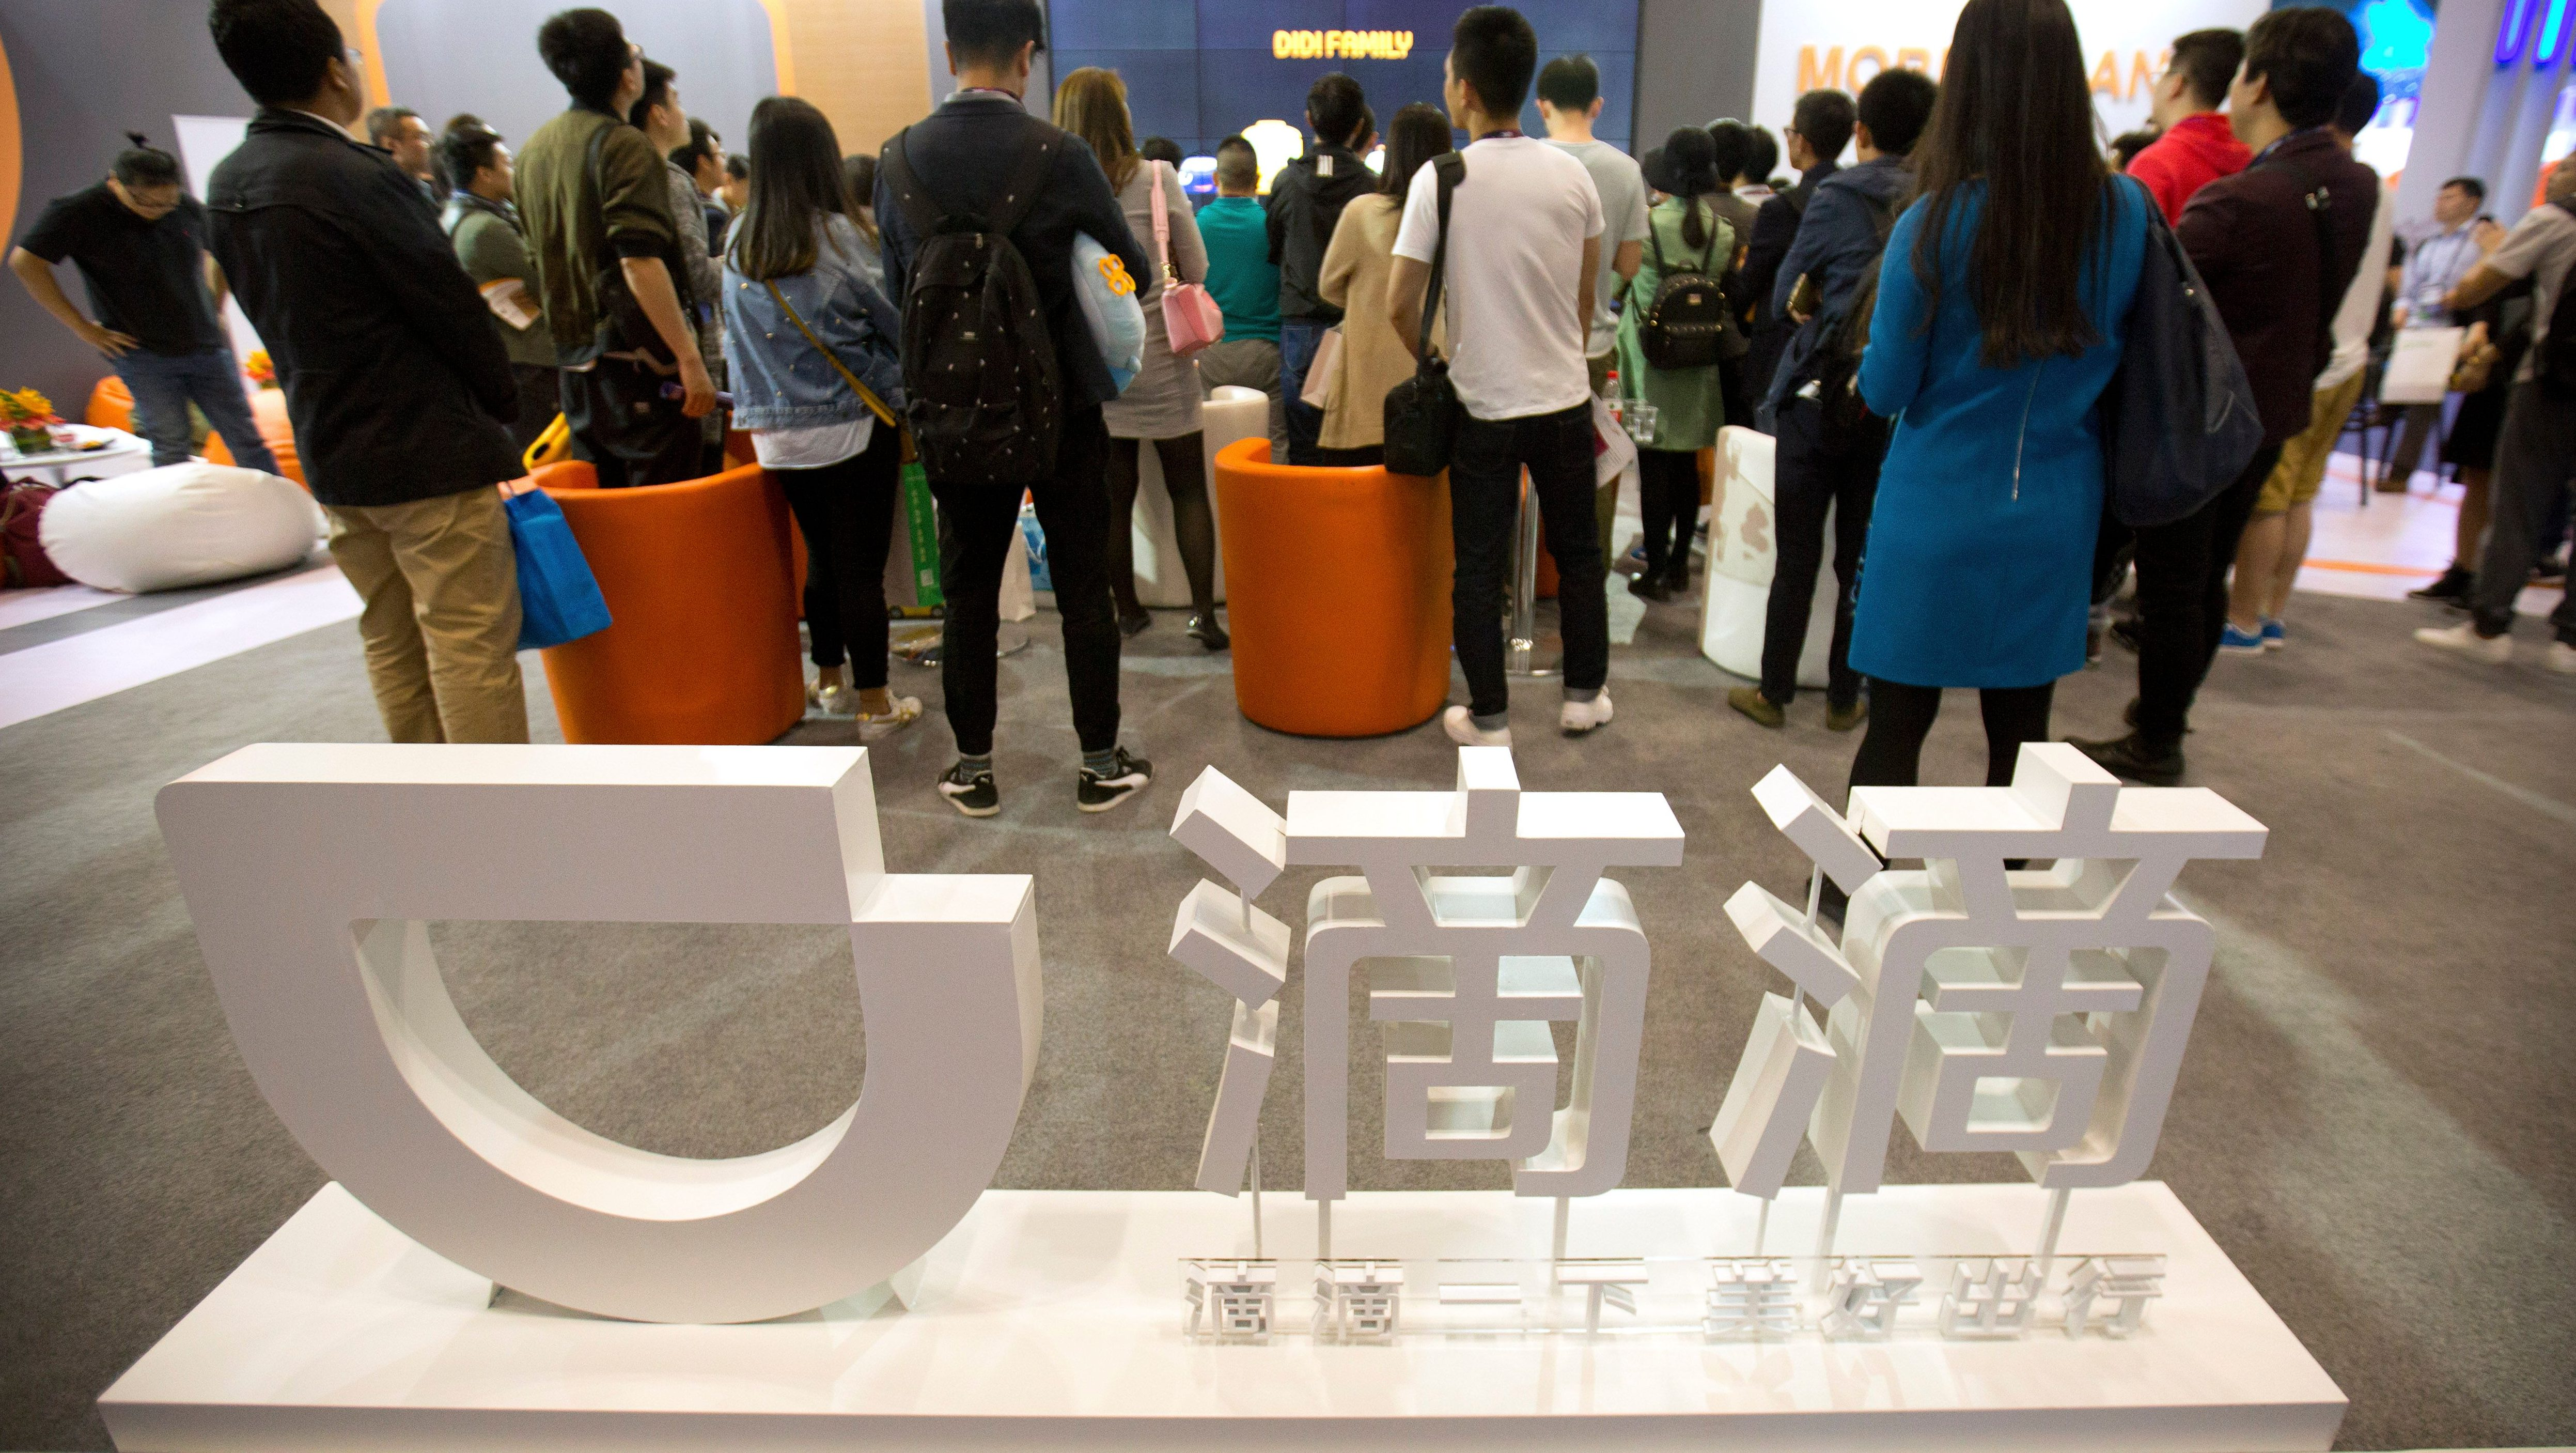 Visitors look at a display booth for Chinese ride-hailing service Didi Chuxing at the Global Mobile Internet Conference (GMIC) in Beijing, Thursday, April 27, 2017.